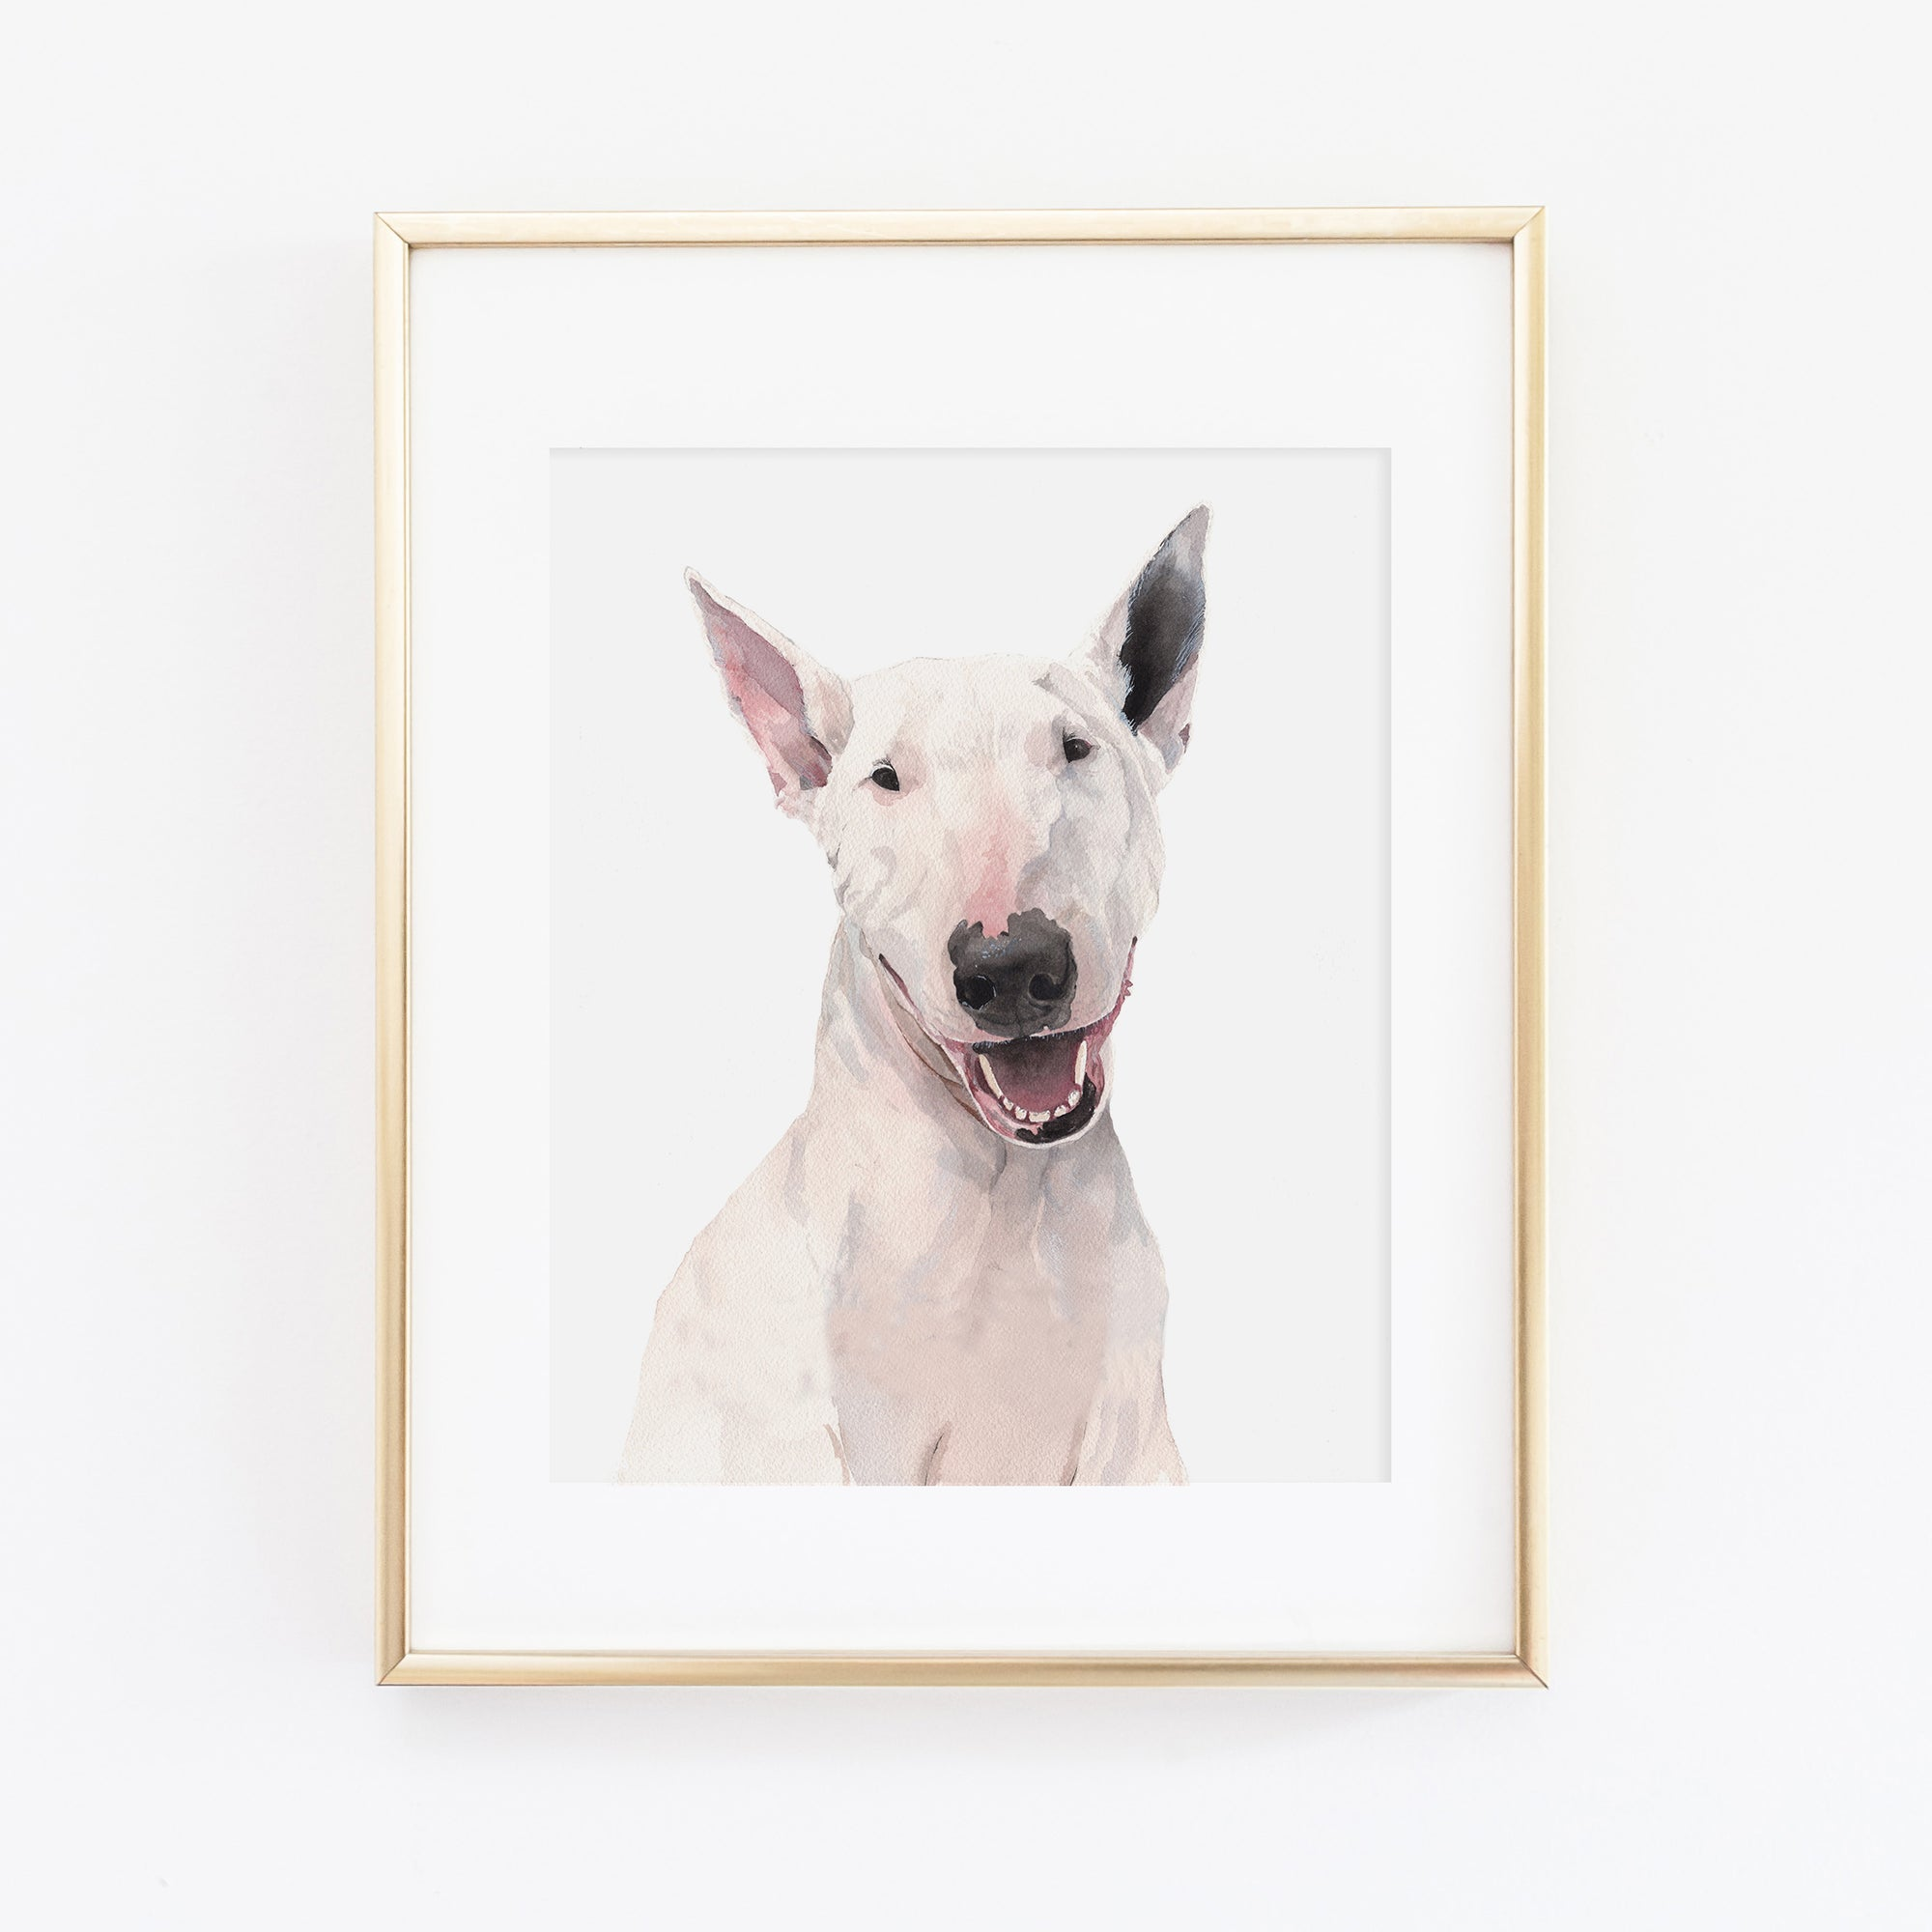 Bull Terrier Dog Art Print - Charlie